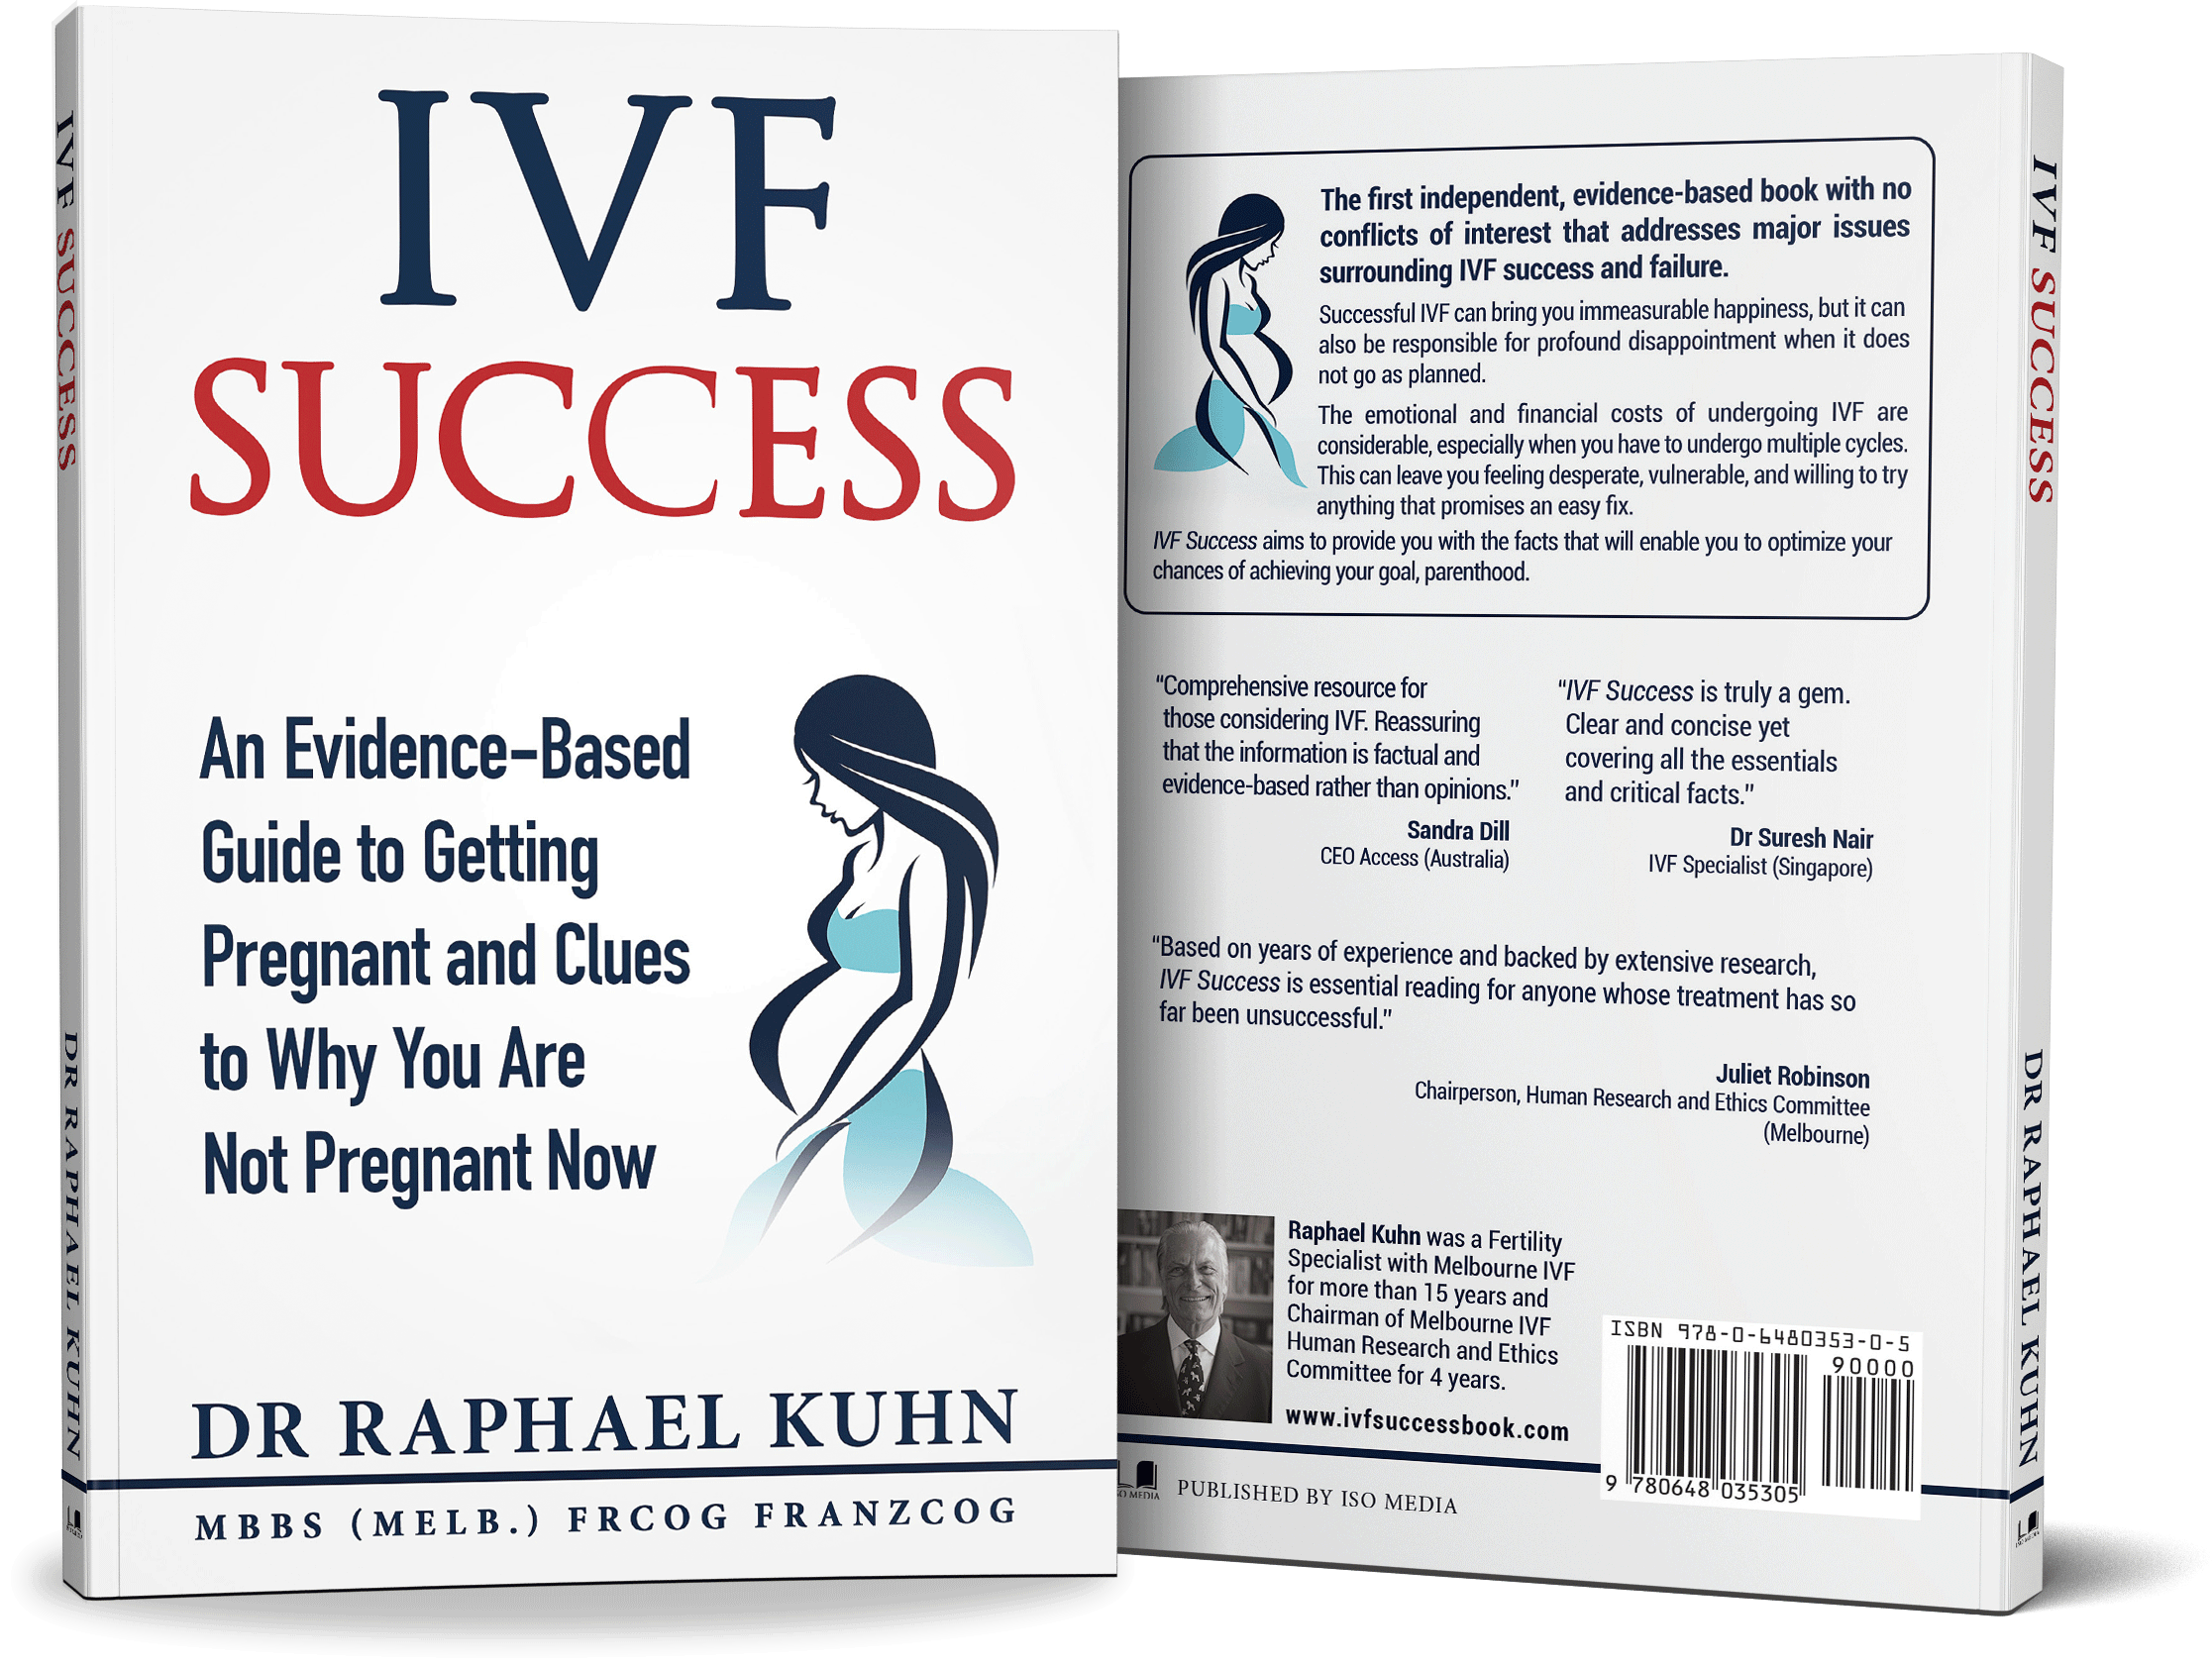 //raphaelkuhn.com/wp-content/uploads/2017/08/IVF-Success-book-mock-up.png